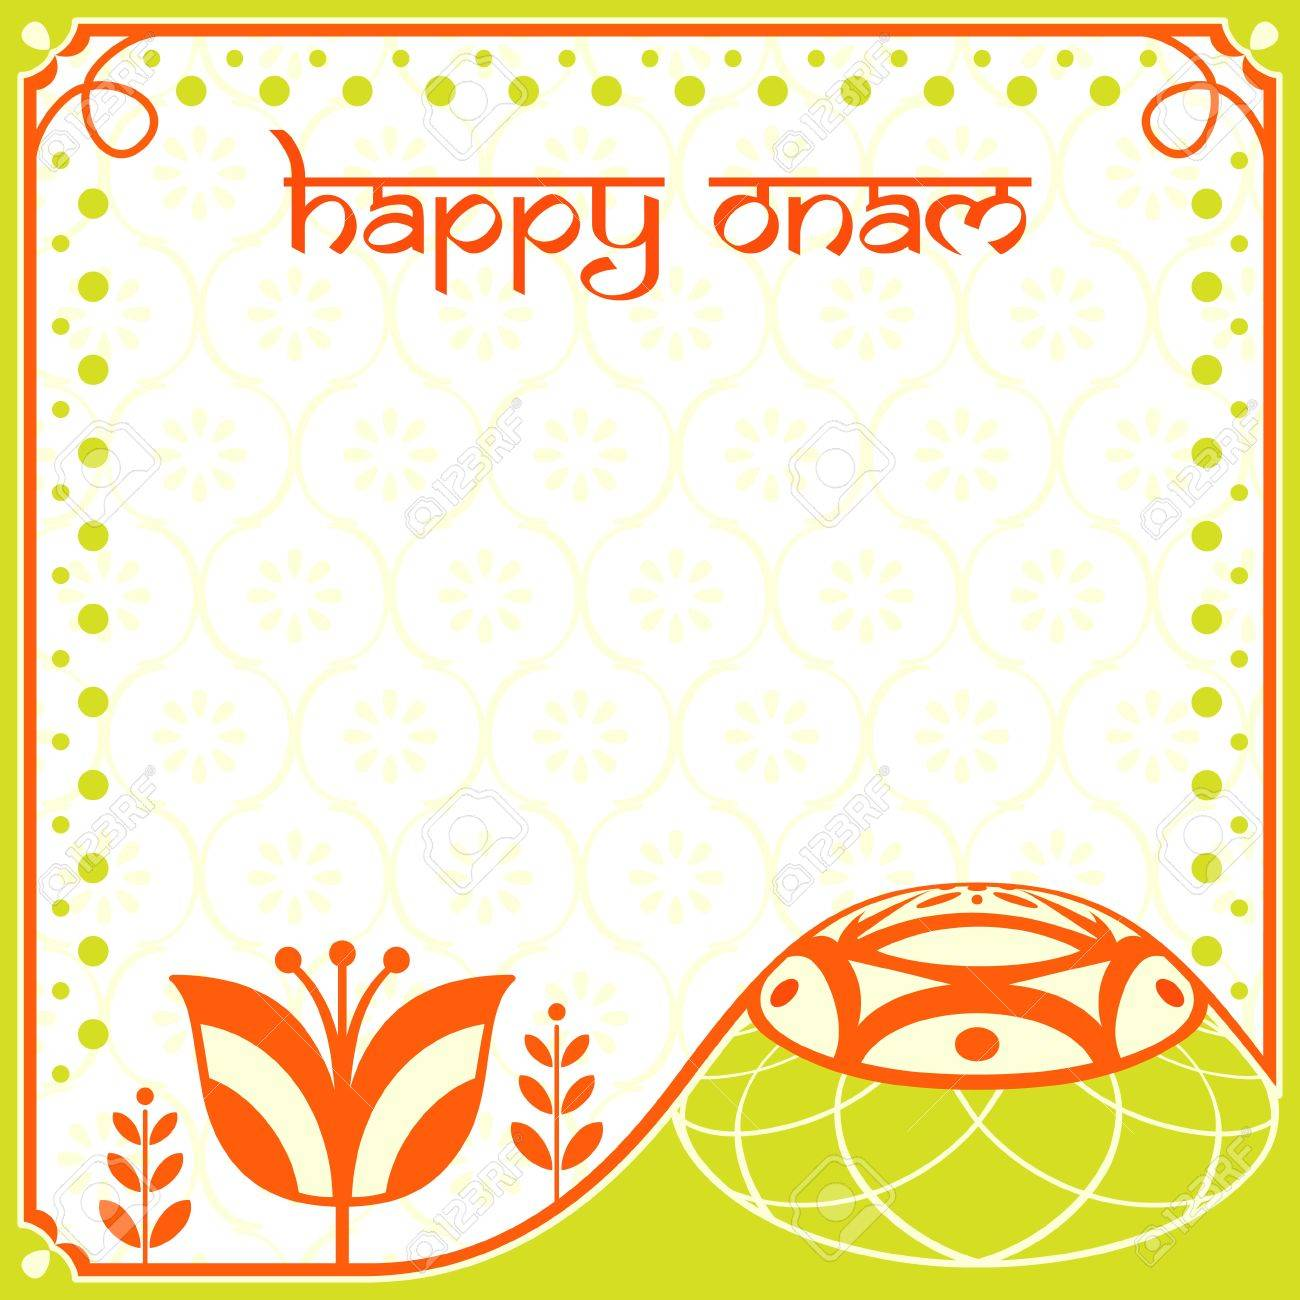 Indian Festival Decoration Decorated Greeting Card For Indian Onam Holiday Royalty Free